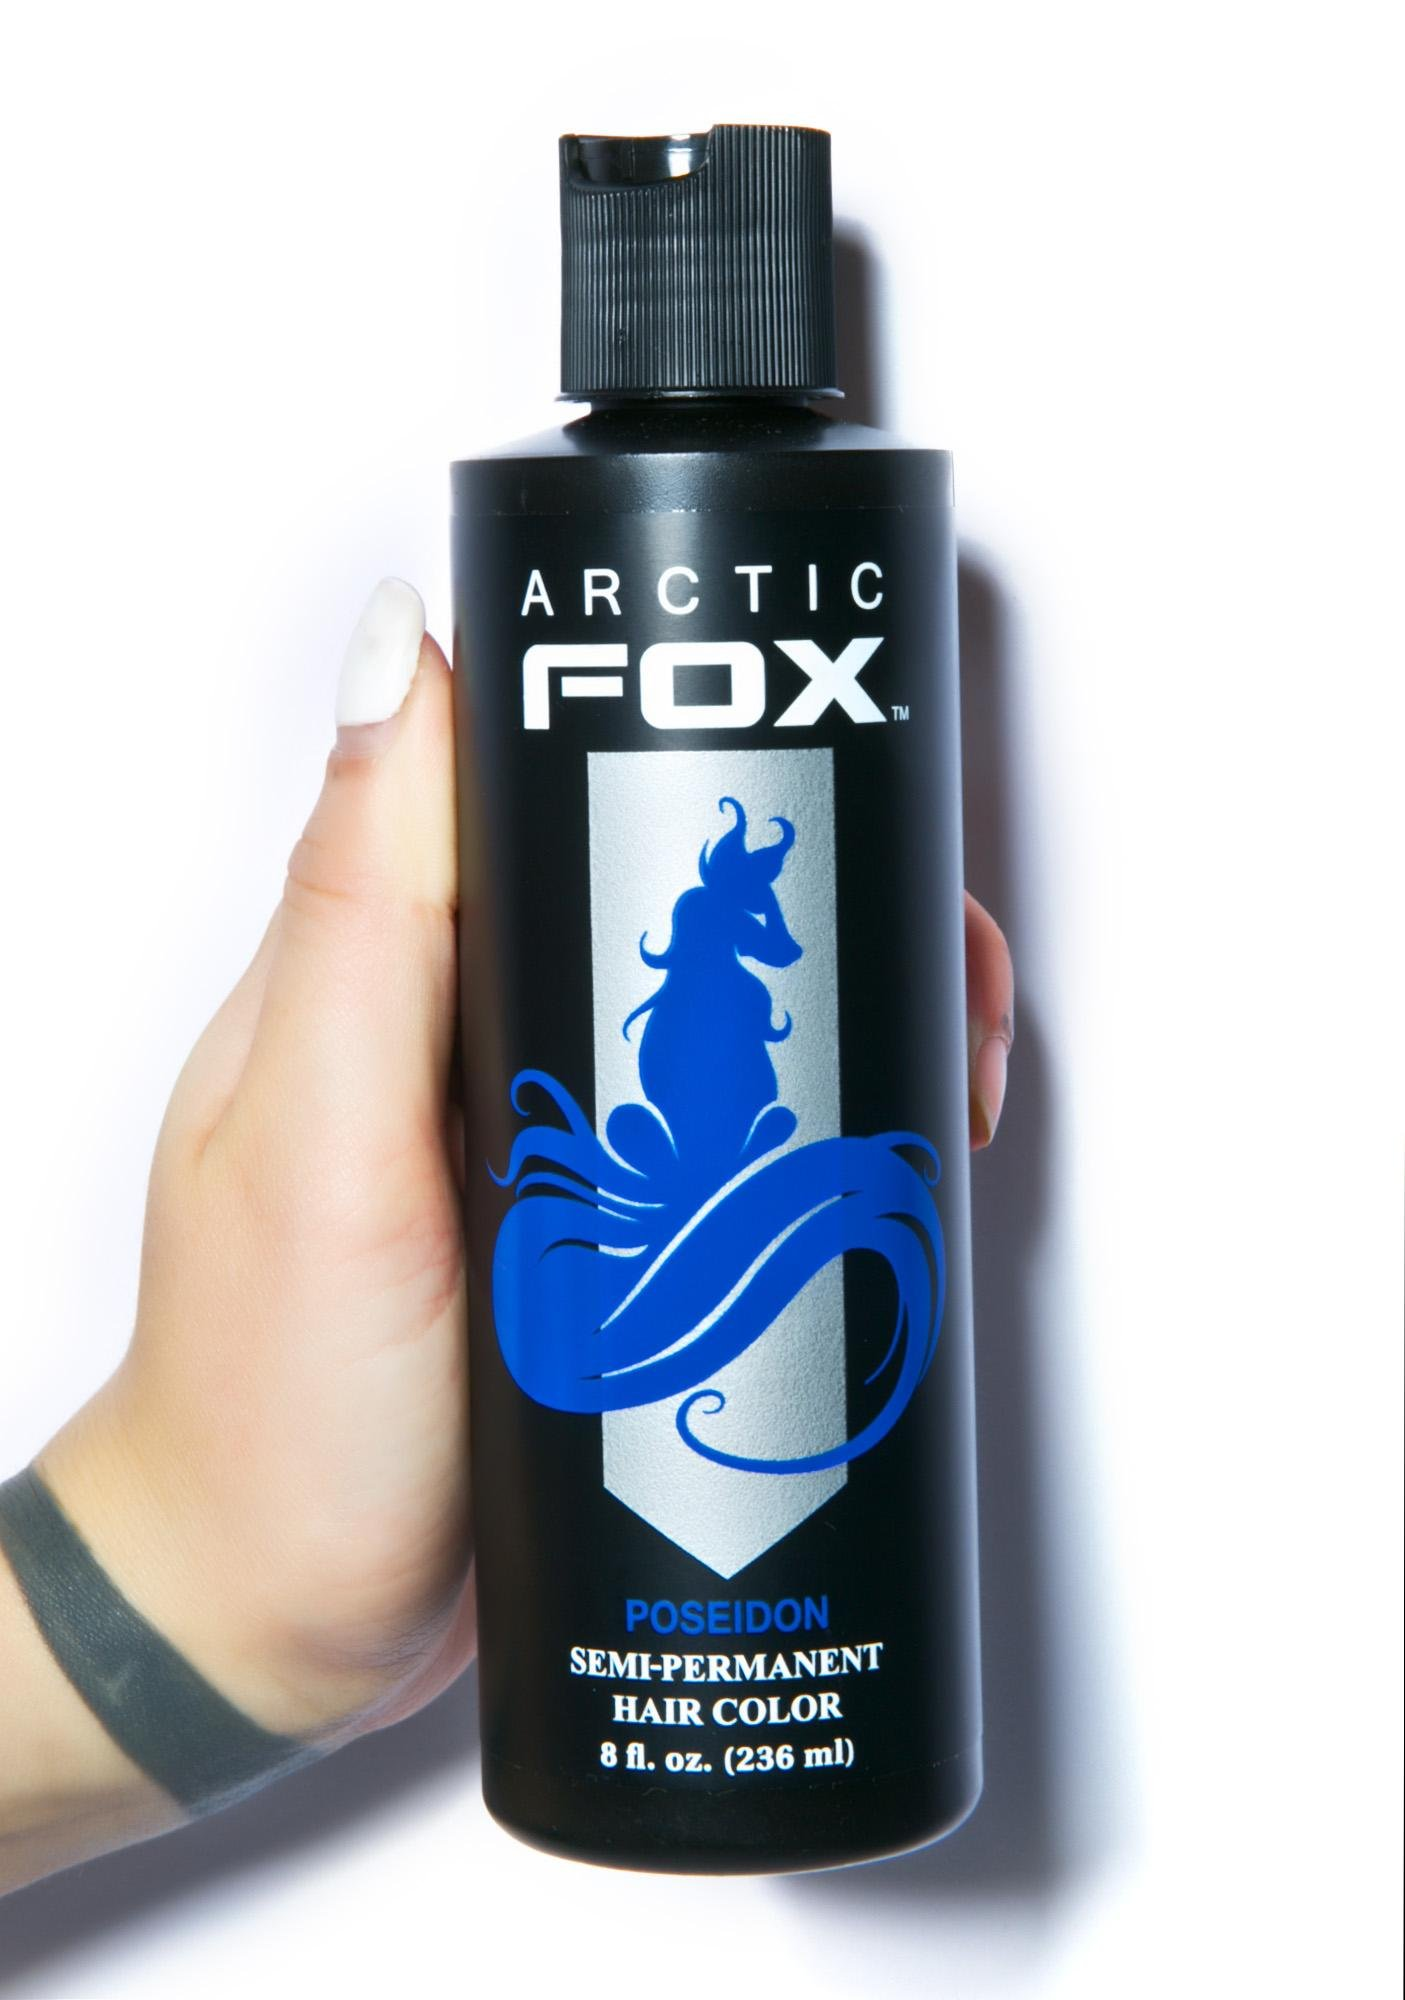 Arctic Fox Poseidon Hair Dye